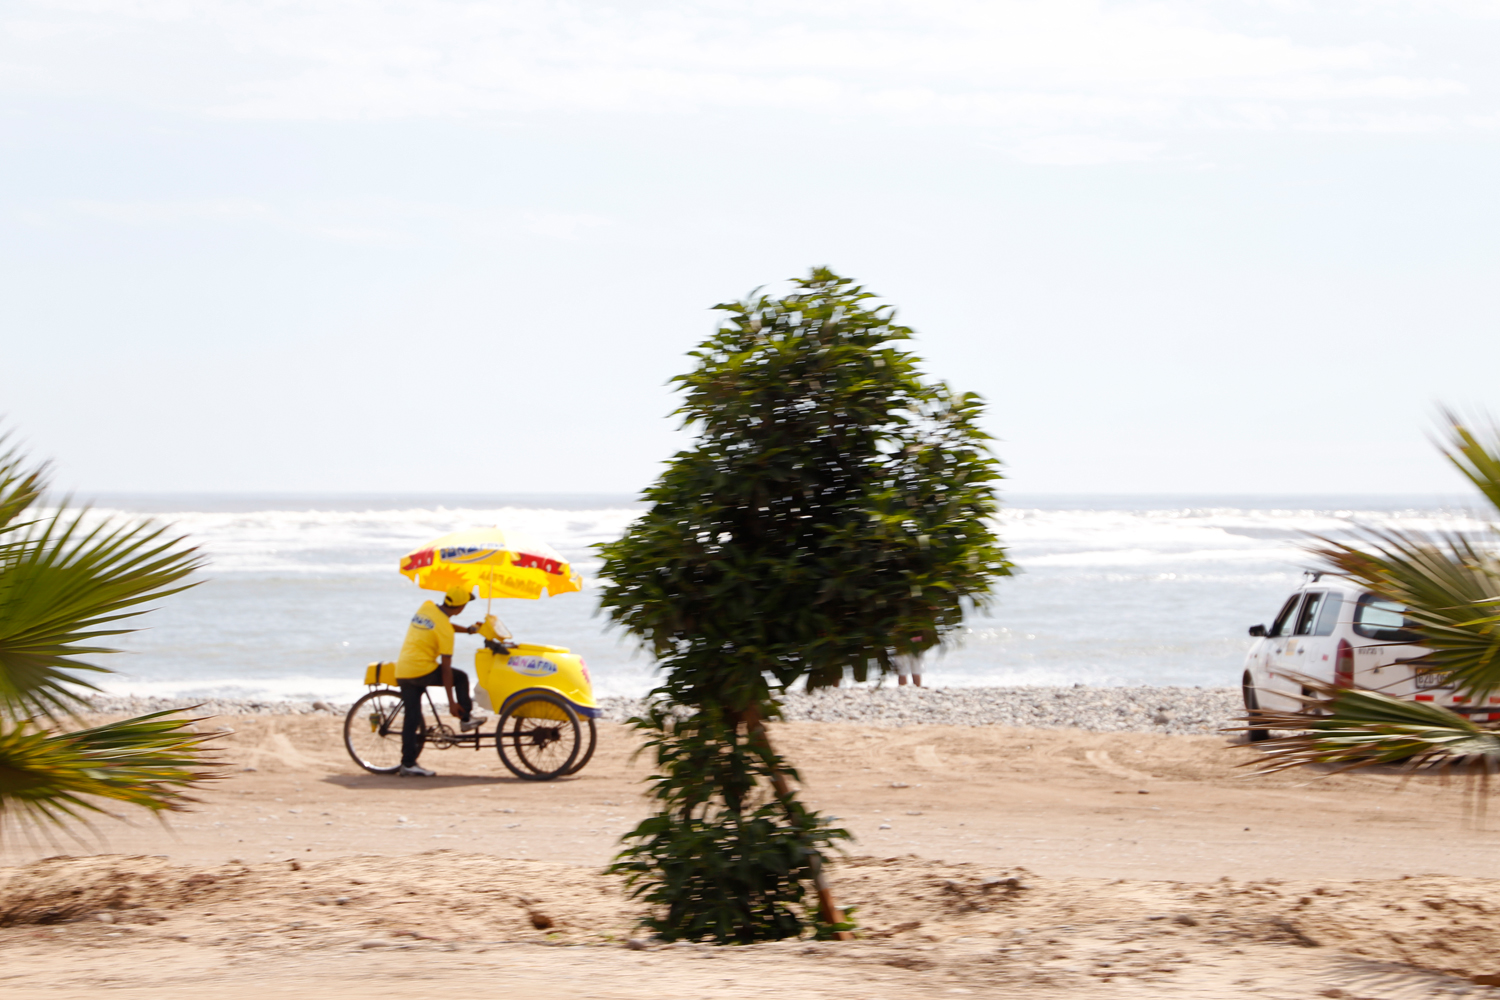 A man selling D'Onofrio brand ice cream on the beach is standing next to his shining yellow bicycle with a cooler box attached to the front and a large parasol spanning the entire vehicle.